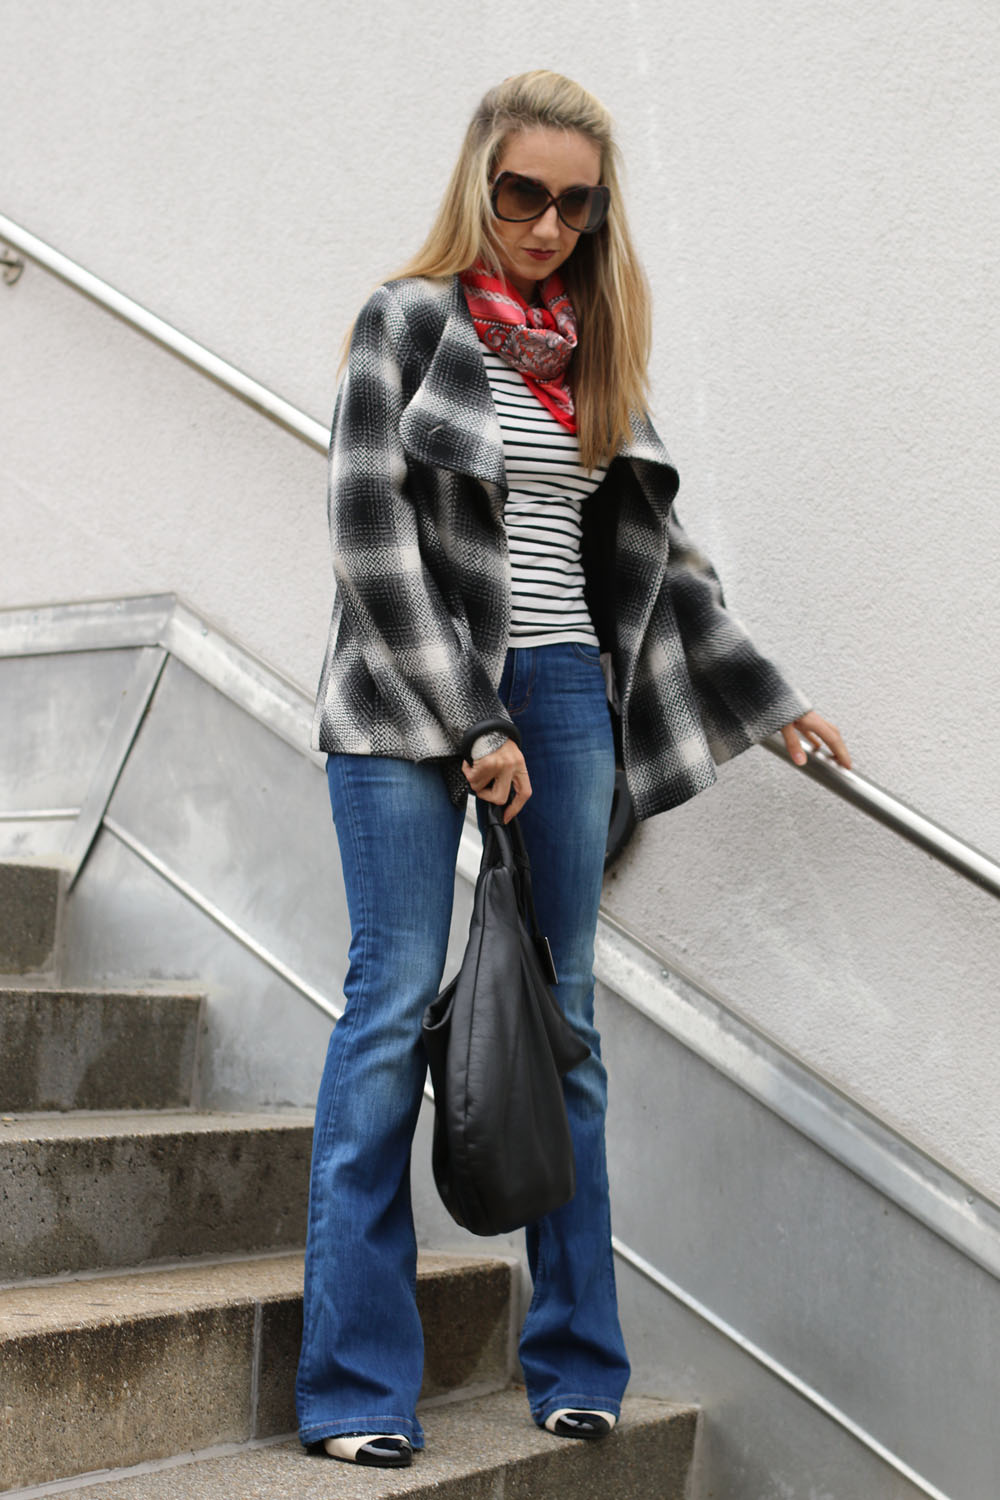 colourclub-schlaghose-trend-flared-jeans-marry-jane-pumps-stripes-shirt4